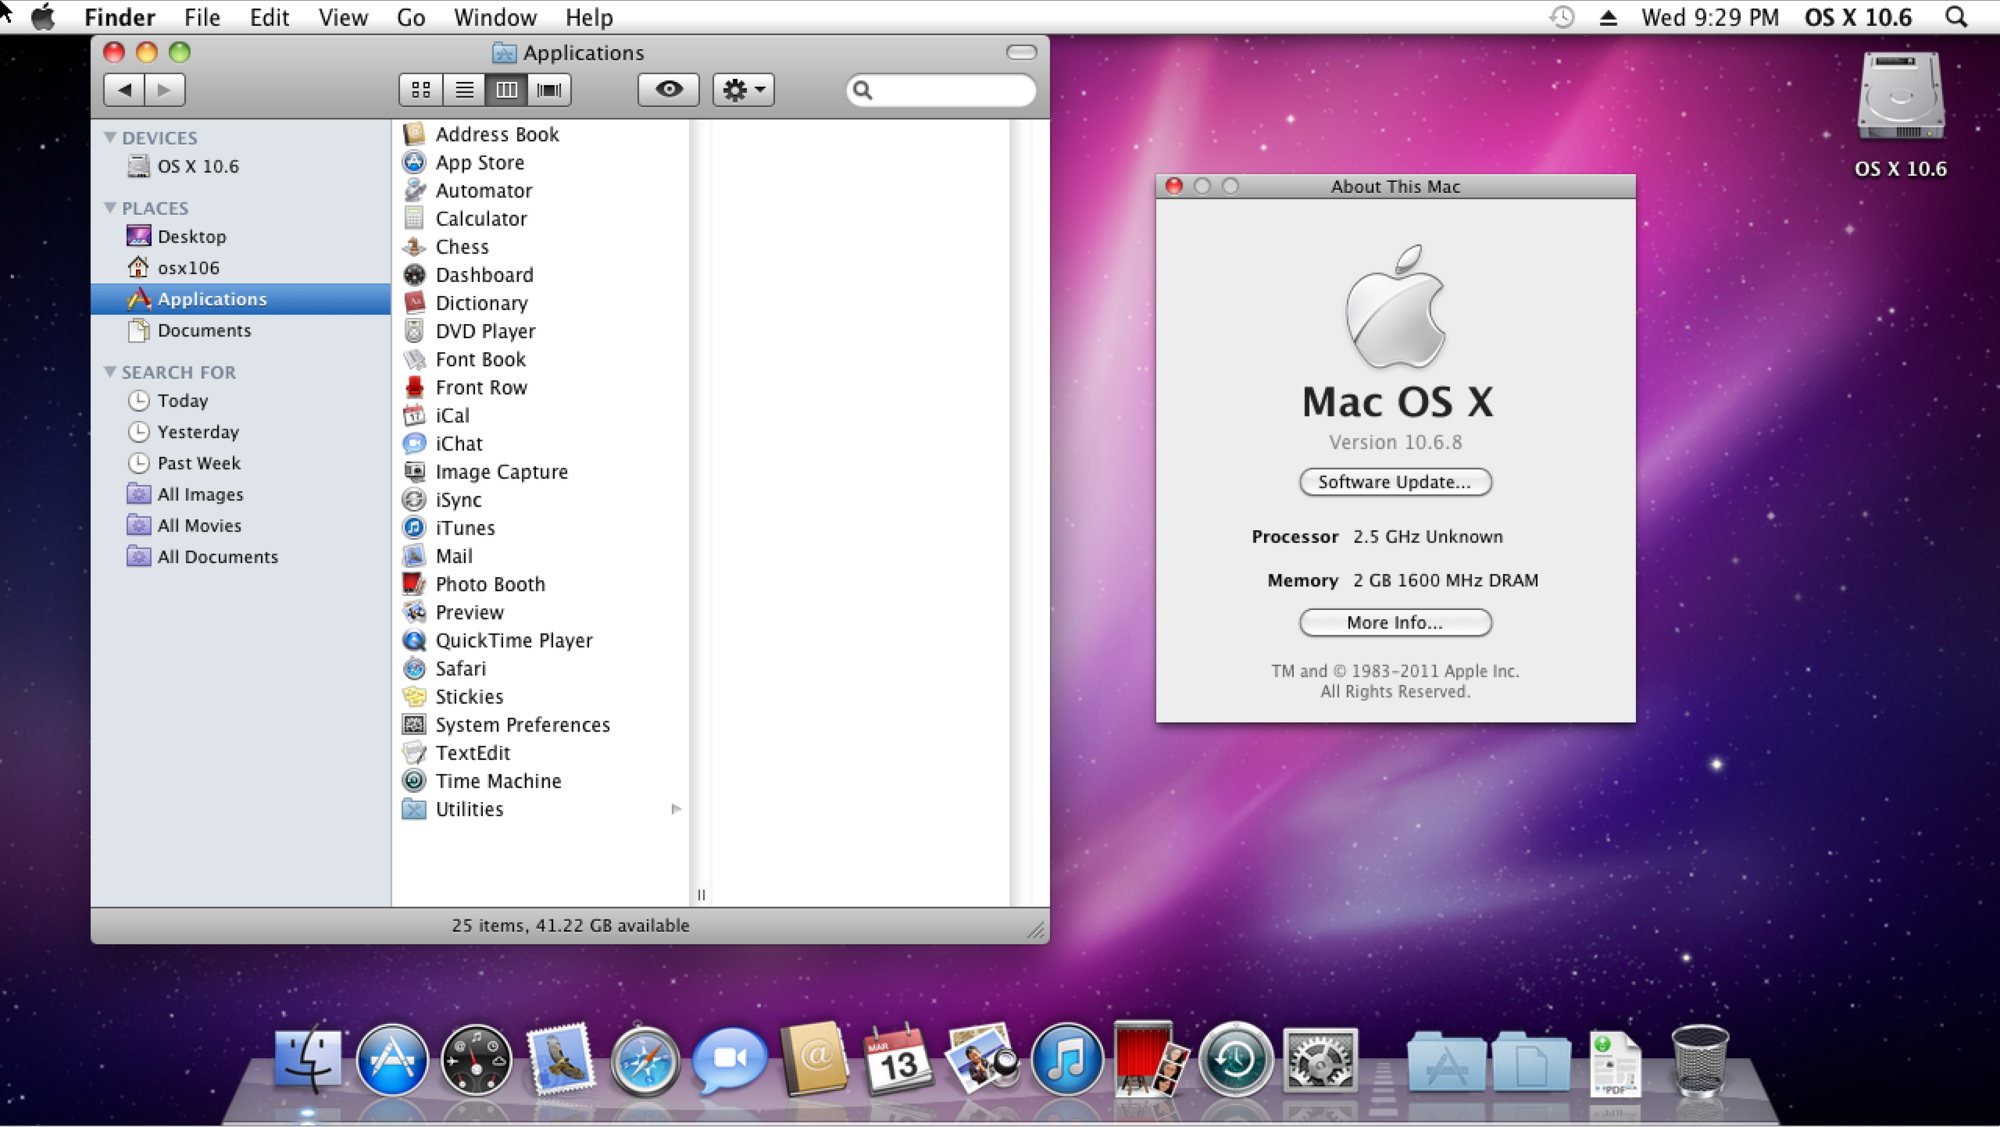 Latest itunes for mac os x 10.6.8